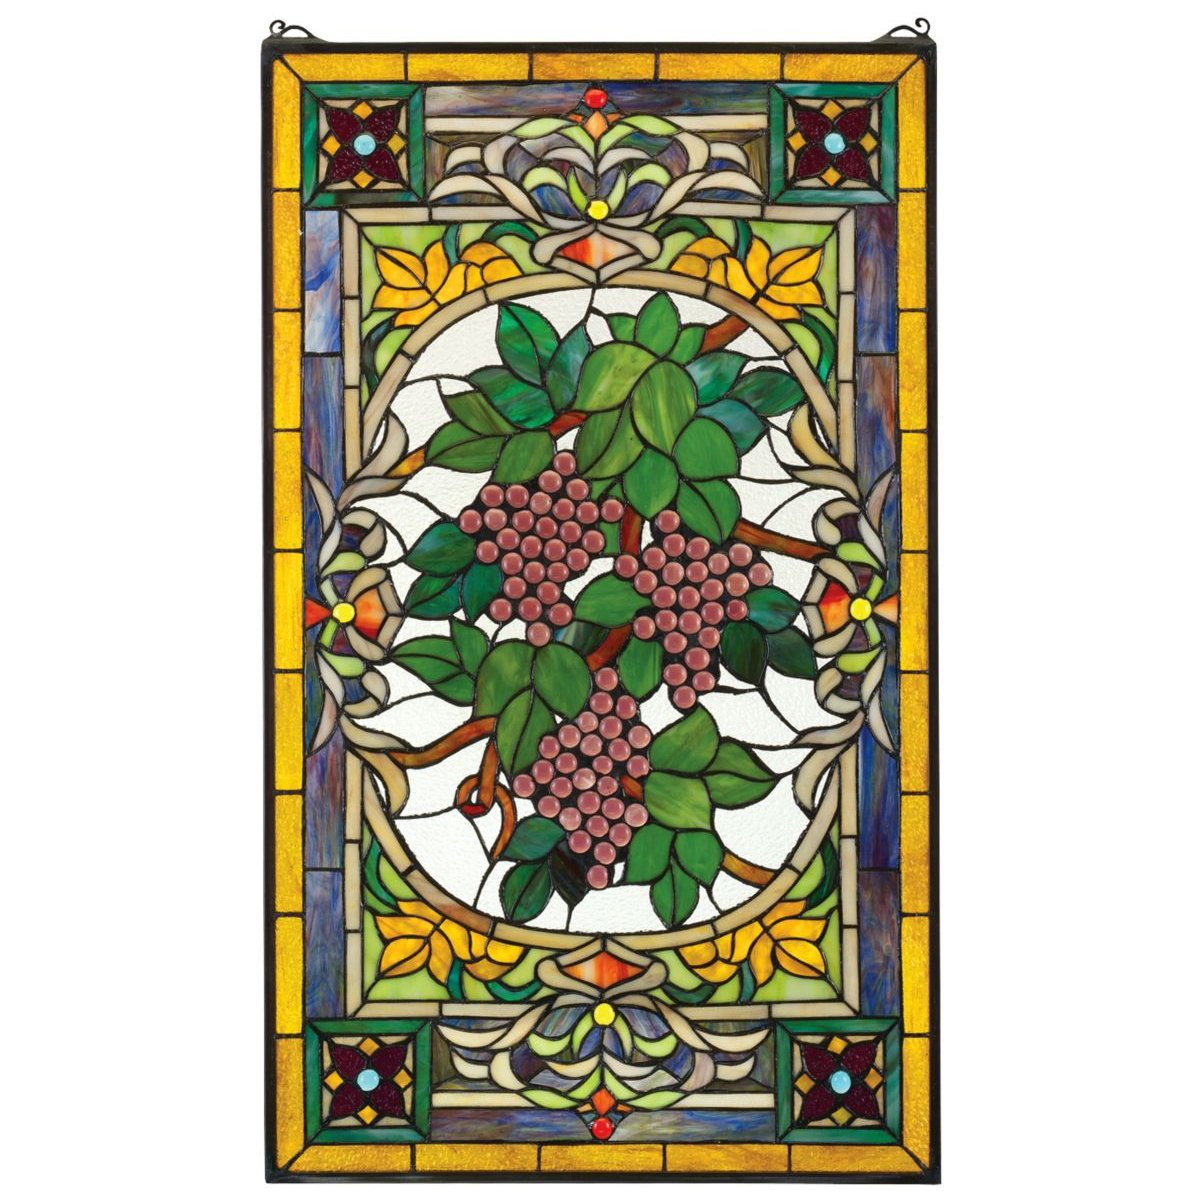 Stained Glass Panel - Fruit of the Vine Grape Stained Glass Window Hangings - Window Treatments by Design Toscano